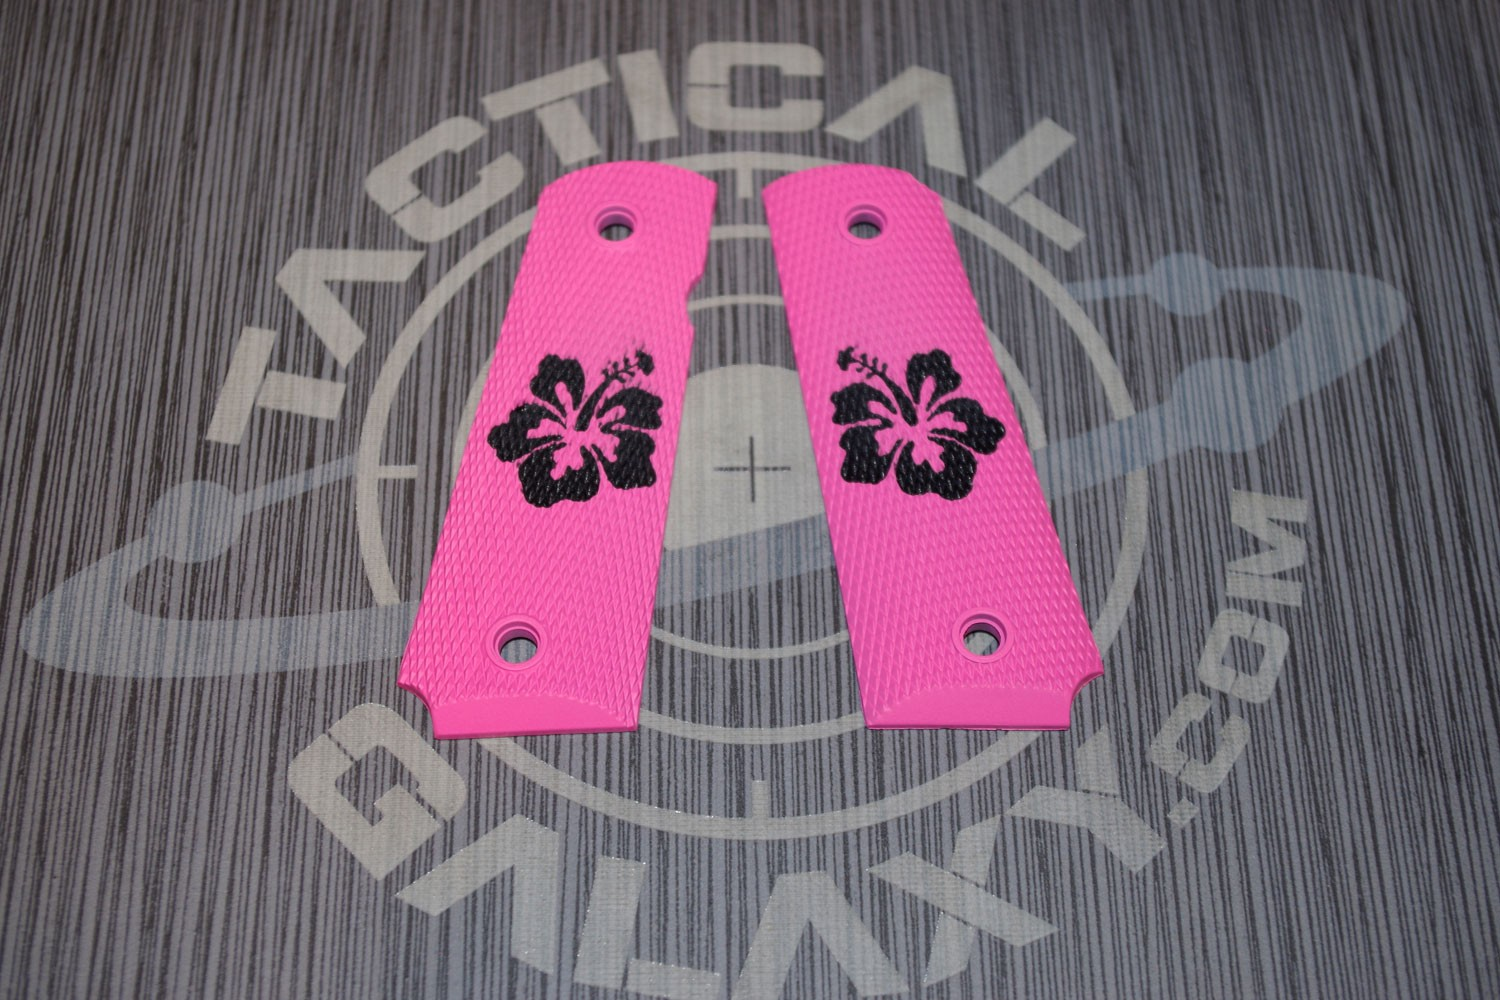 1911 FULL AND MIDSIZE GRIPS HIBISCUS FLOWER ON PINK GRIP